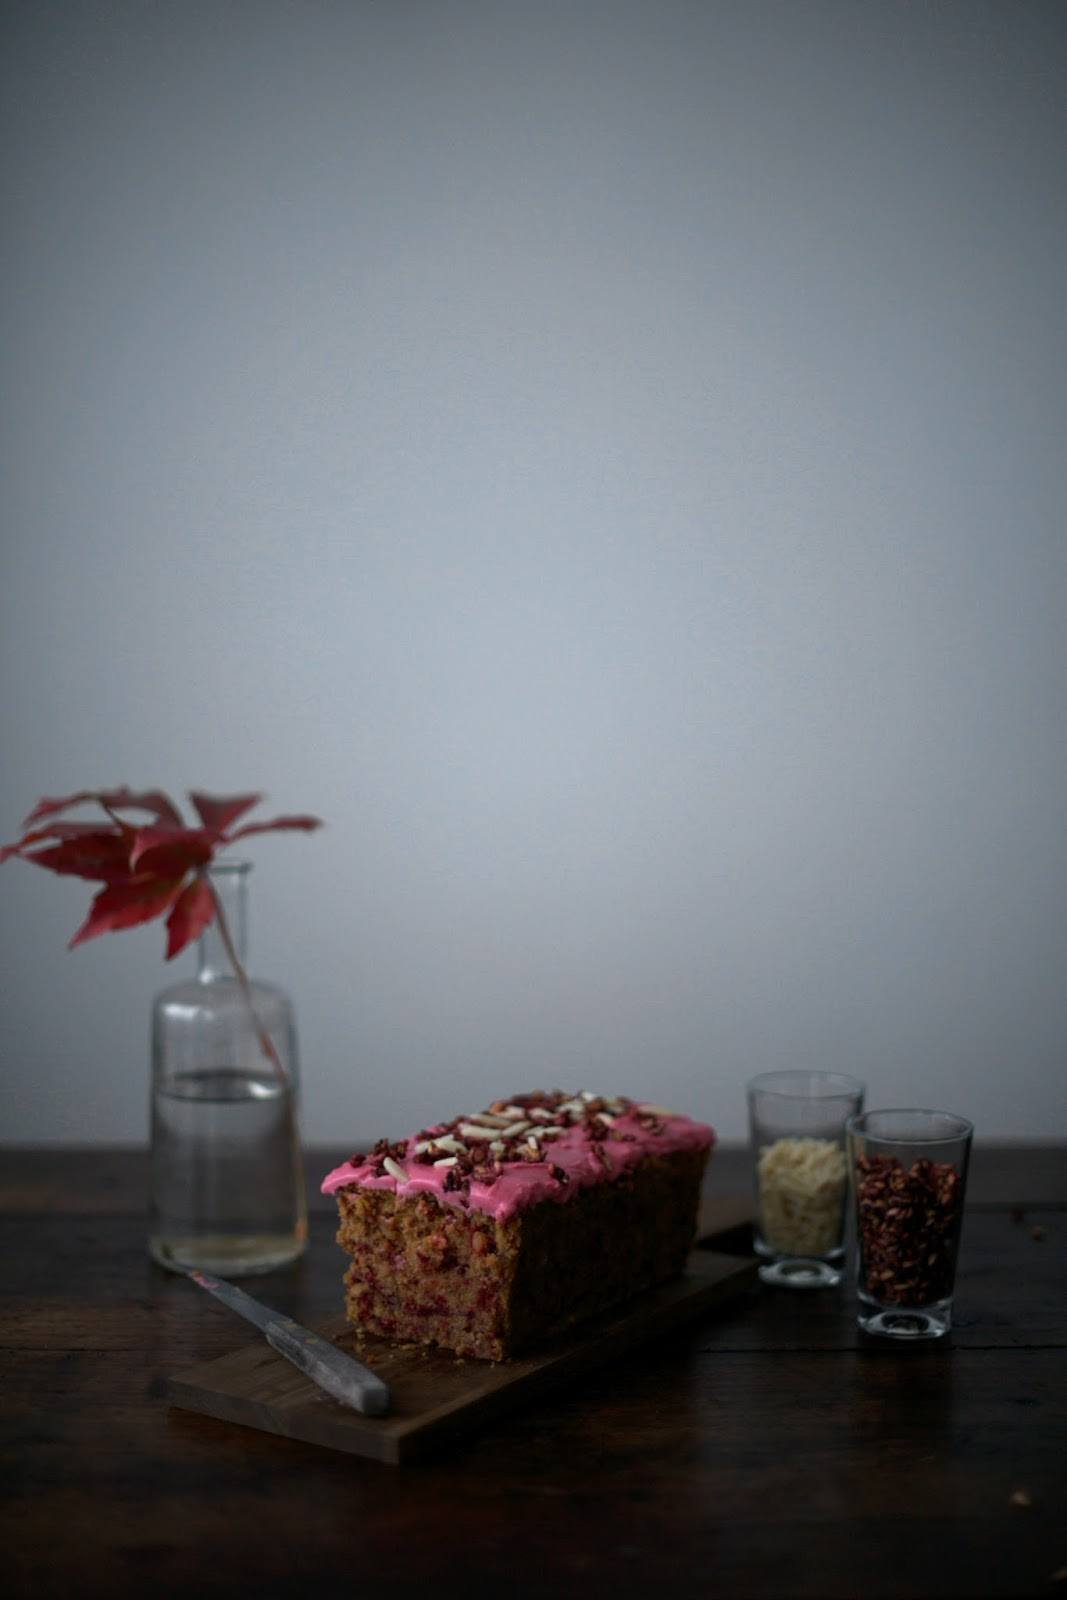 Gluten-free Beetroot Cake with Pomegranate Seeds and Almonds